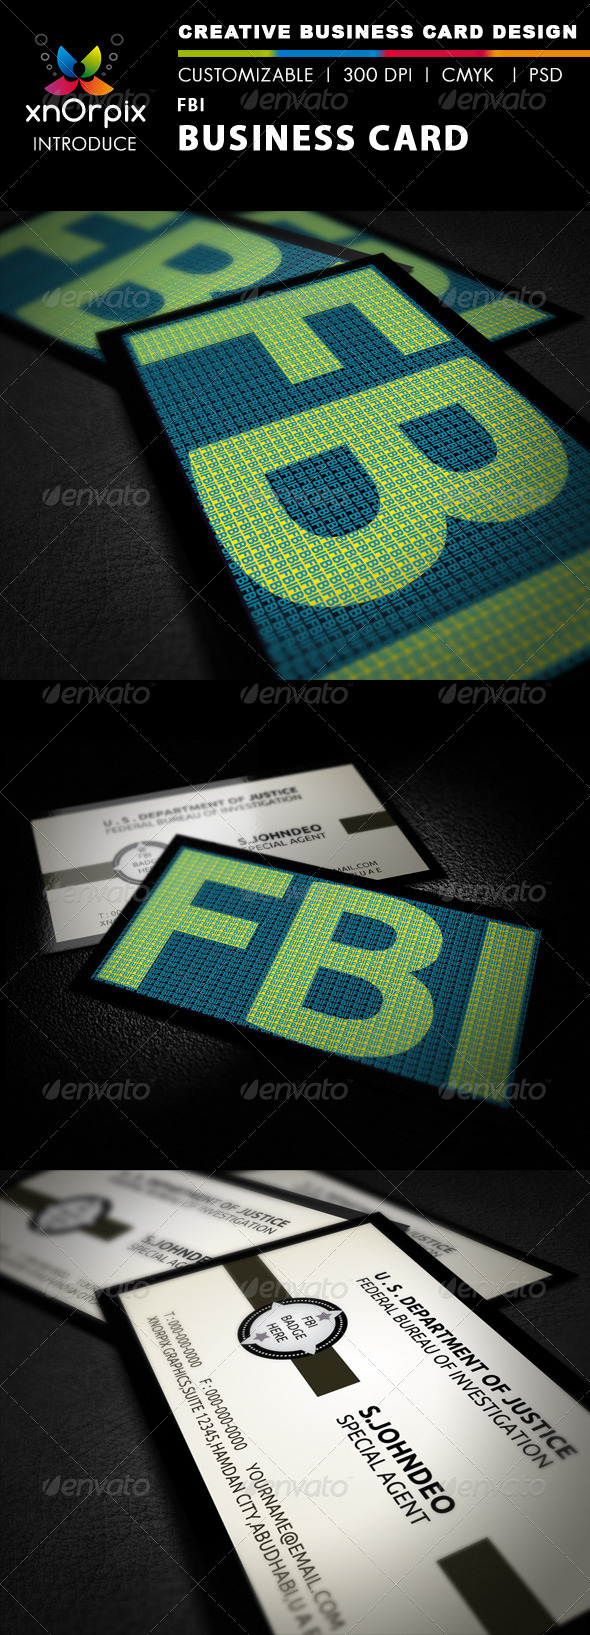 FBI Business Card by -axnorpix | GraphicRiver